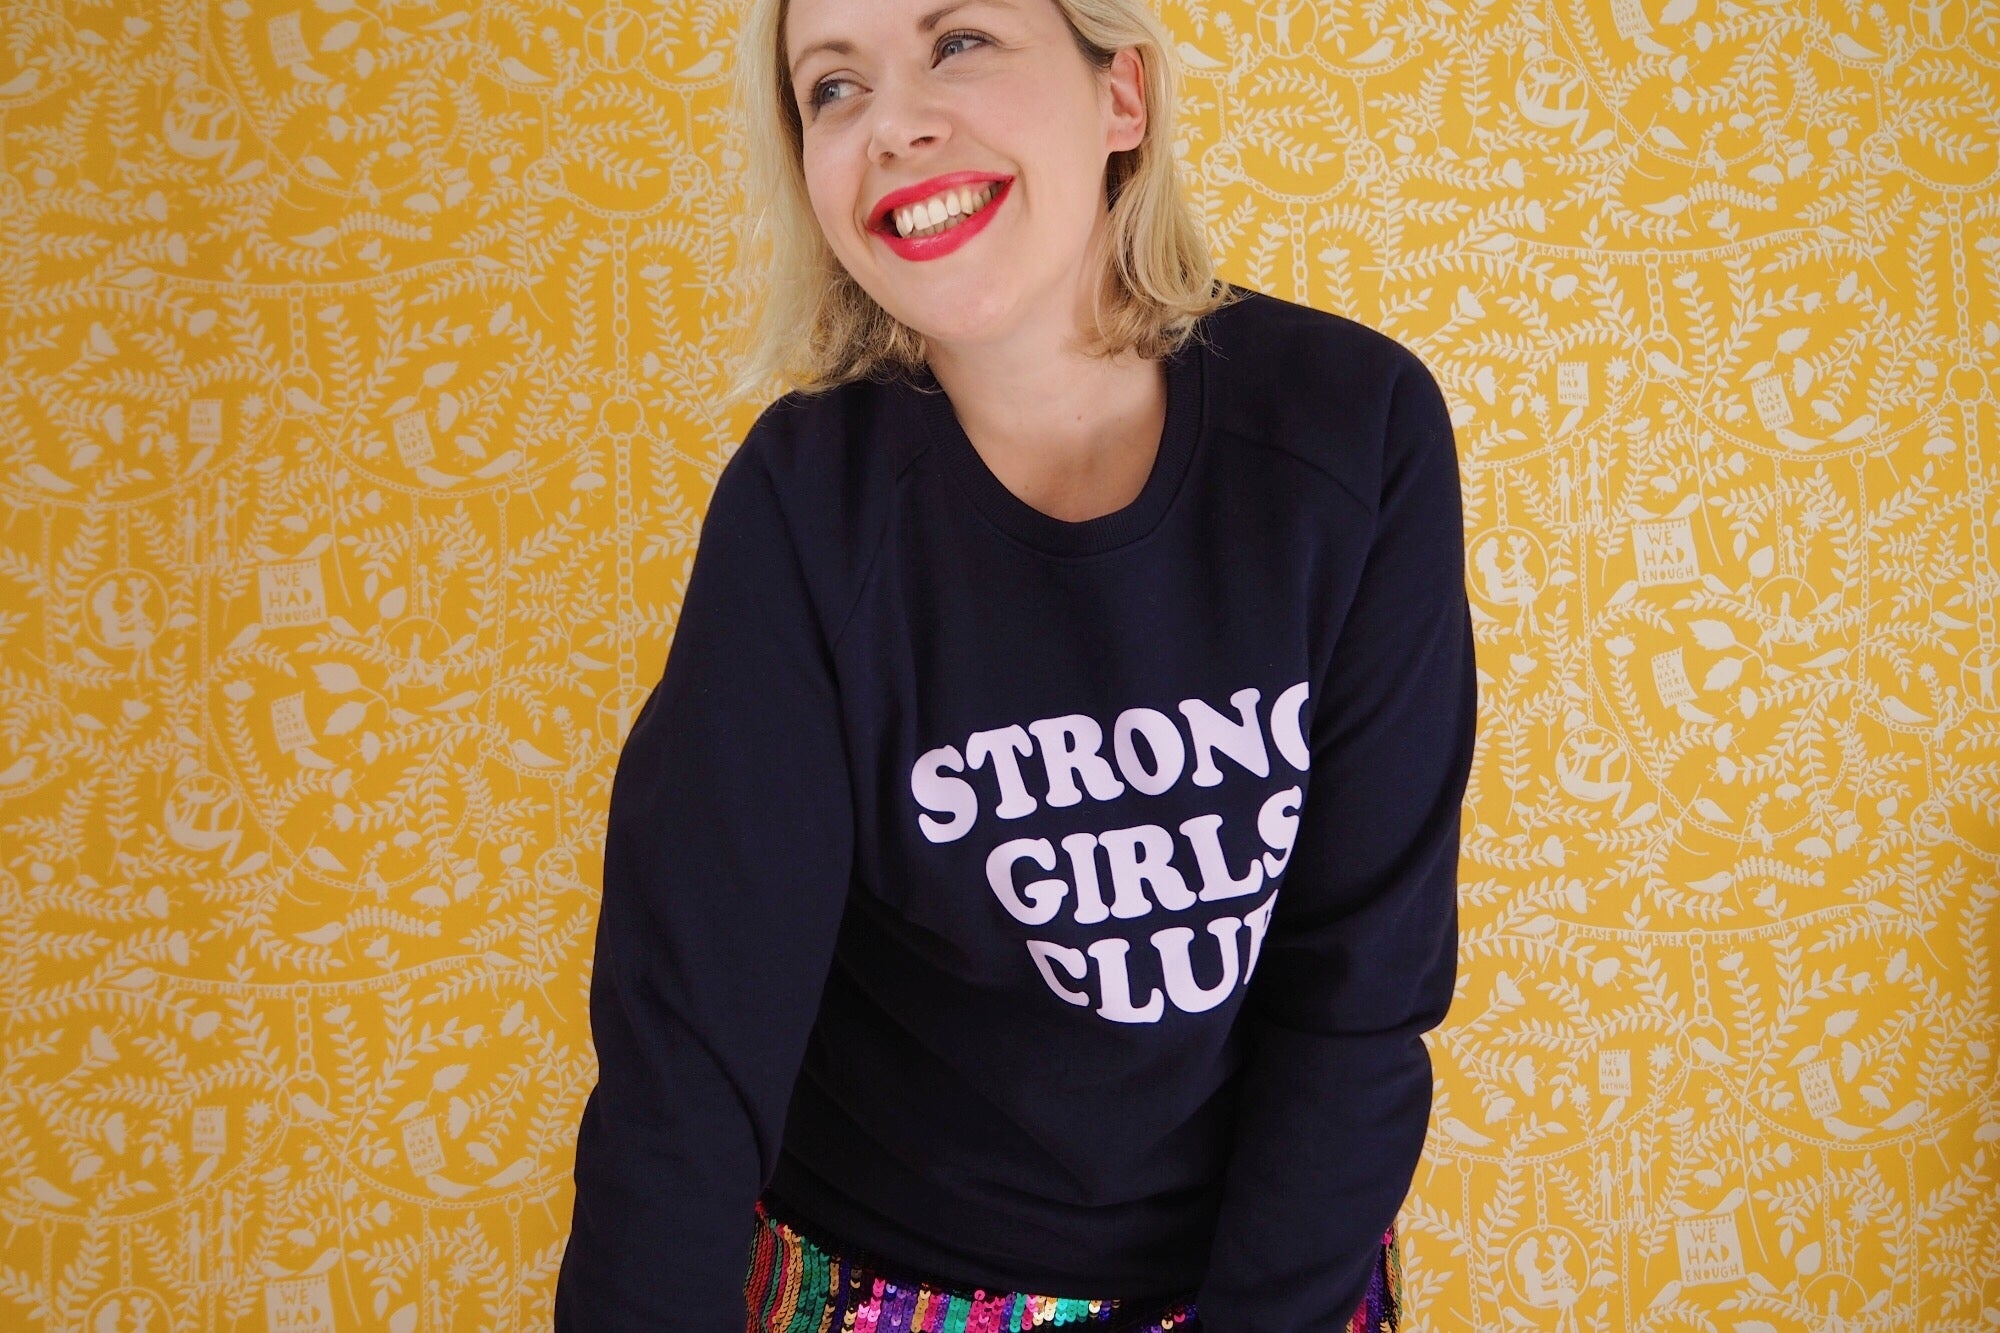 Gemma - Mutha Hood, founder of the Strong Girls Club